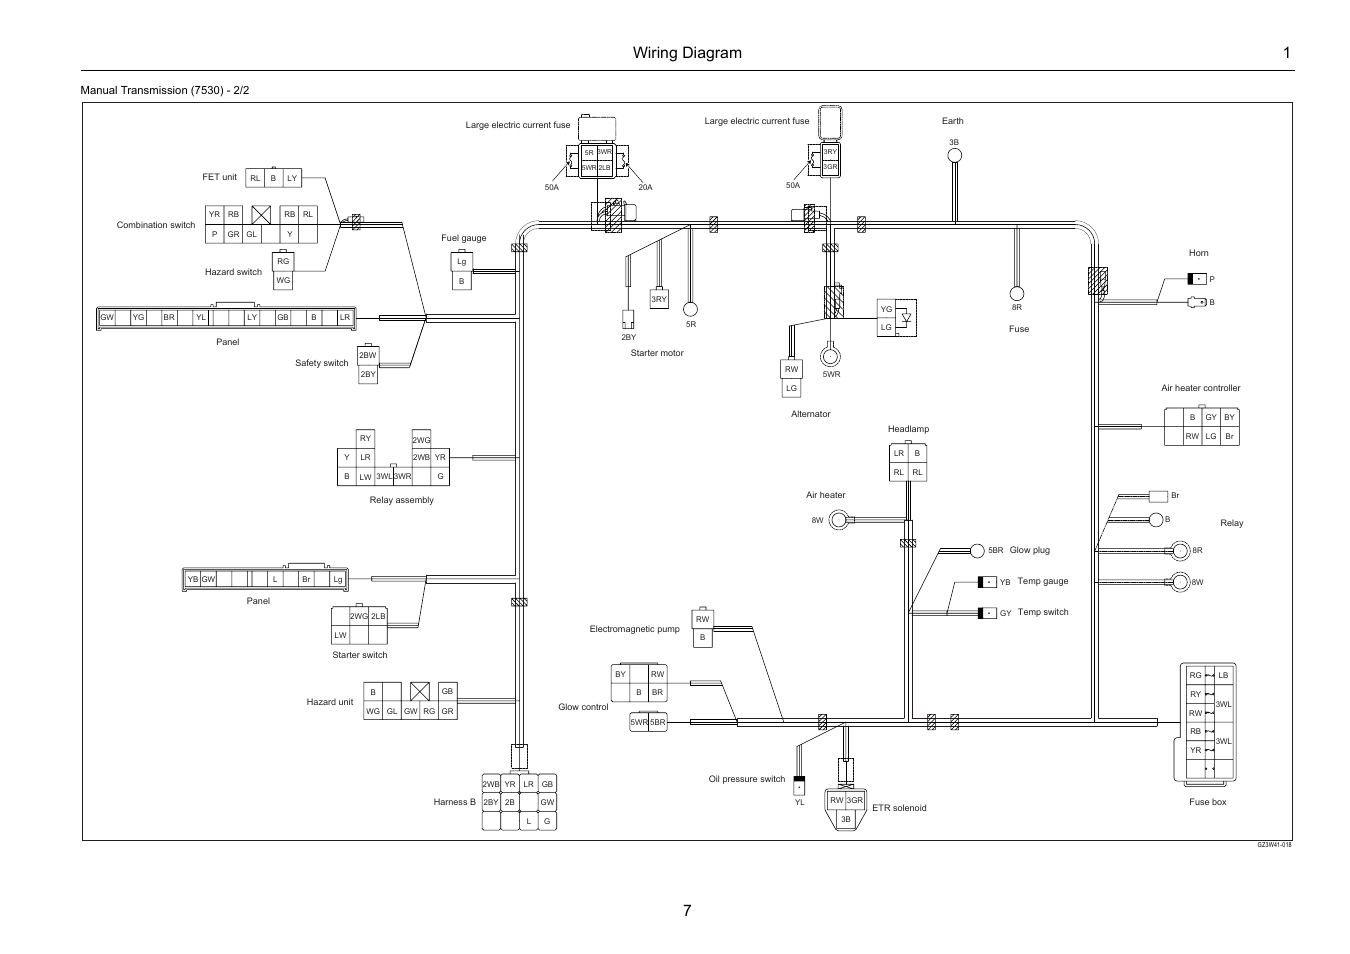 Wiring Diagram 1 7